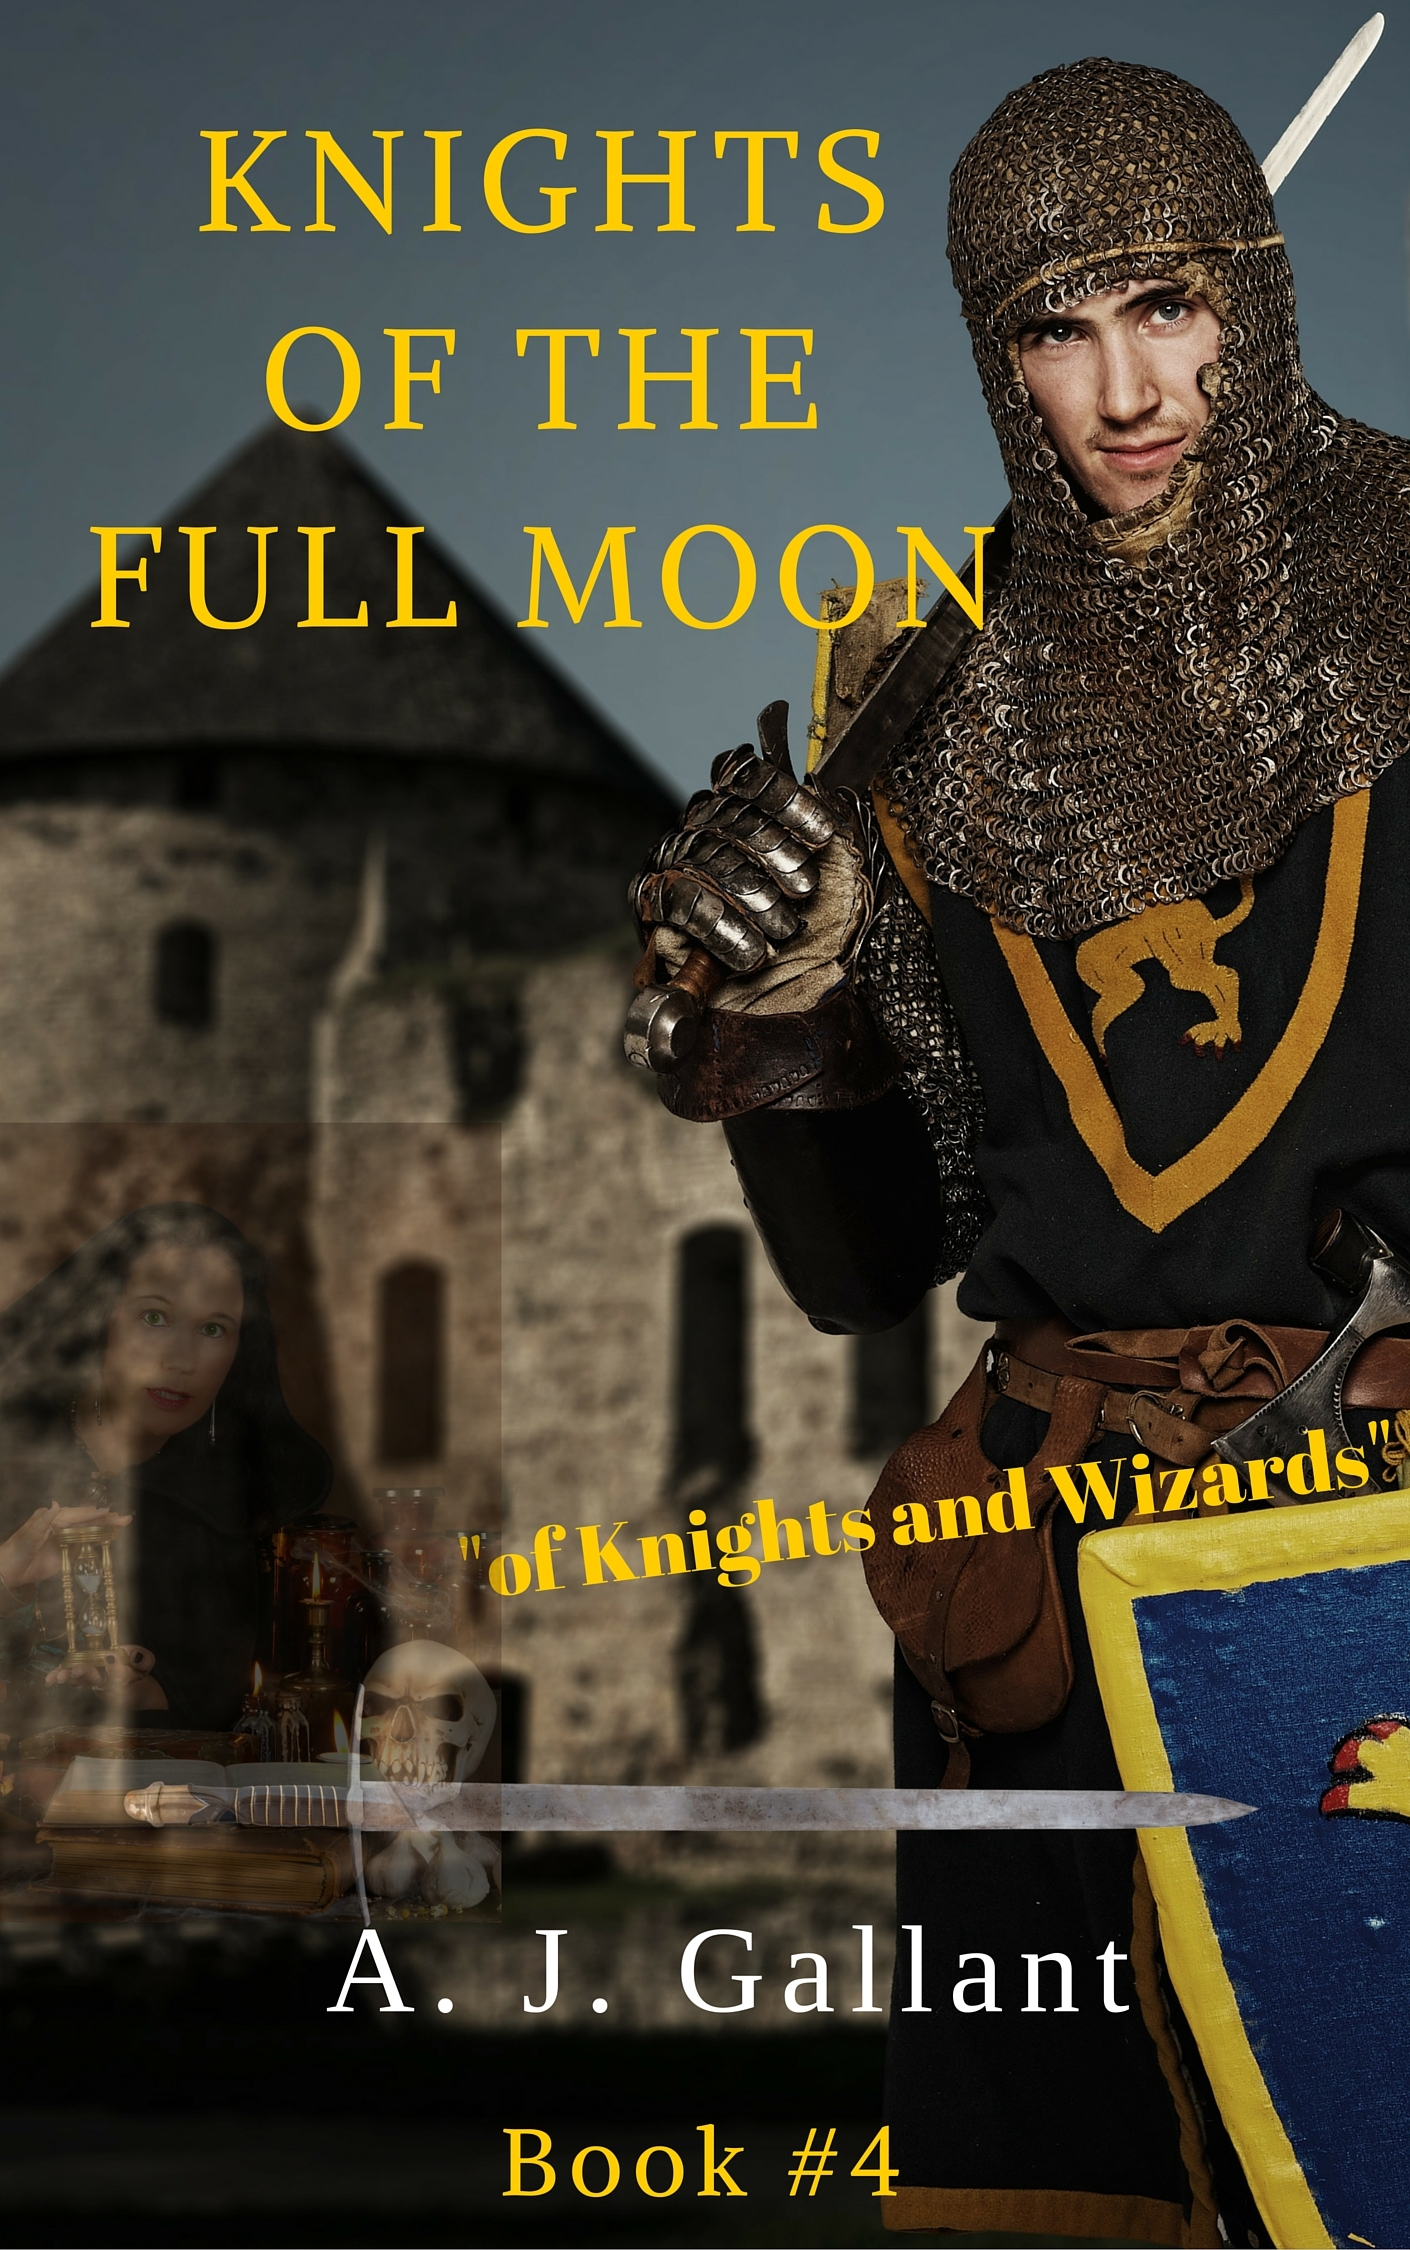 knights of the full moon  by  A. Joseph Gallant